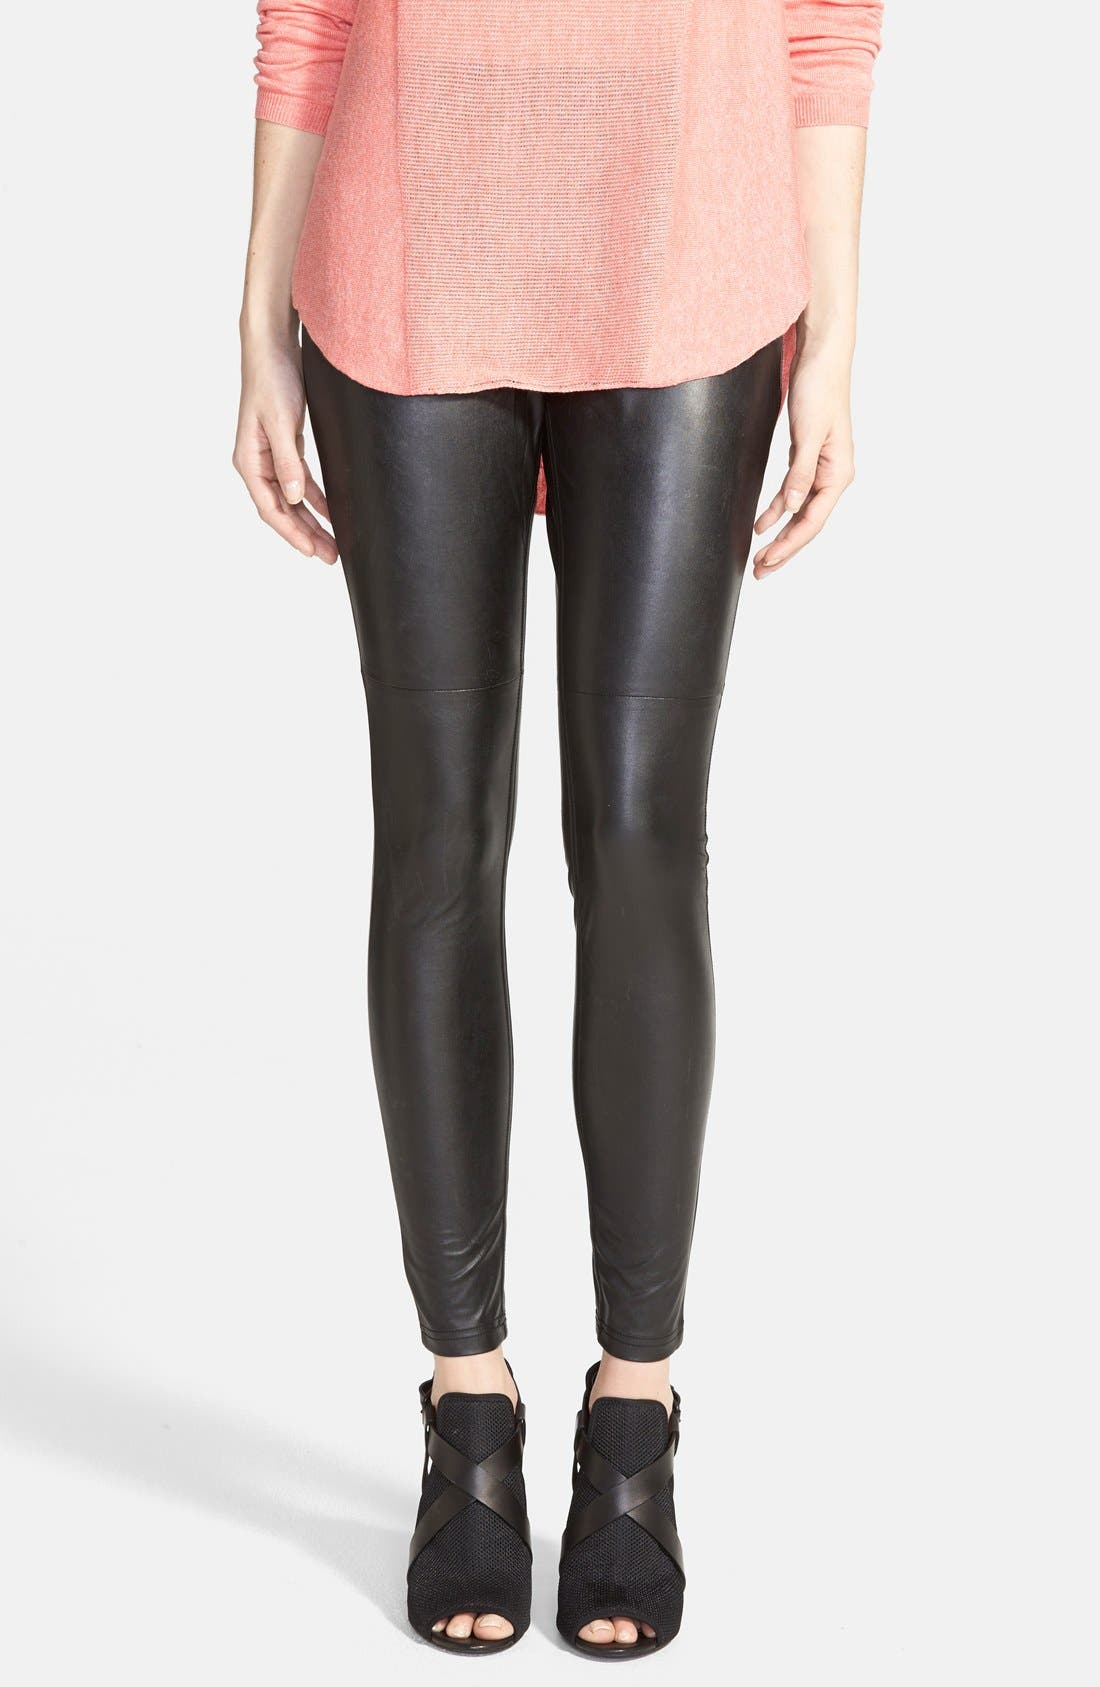 Alternate Image 1 Selected - Hue Faux Leather Leggings